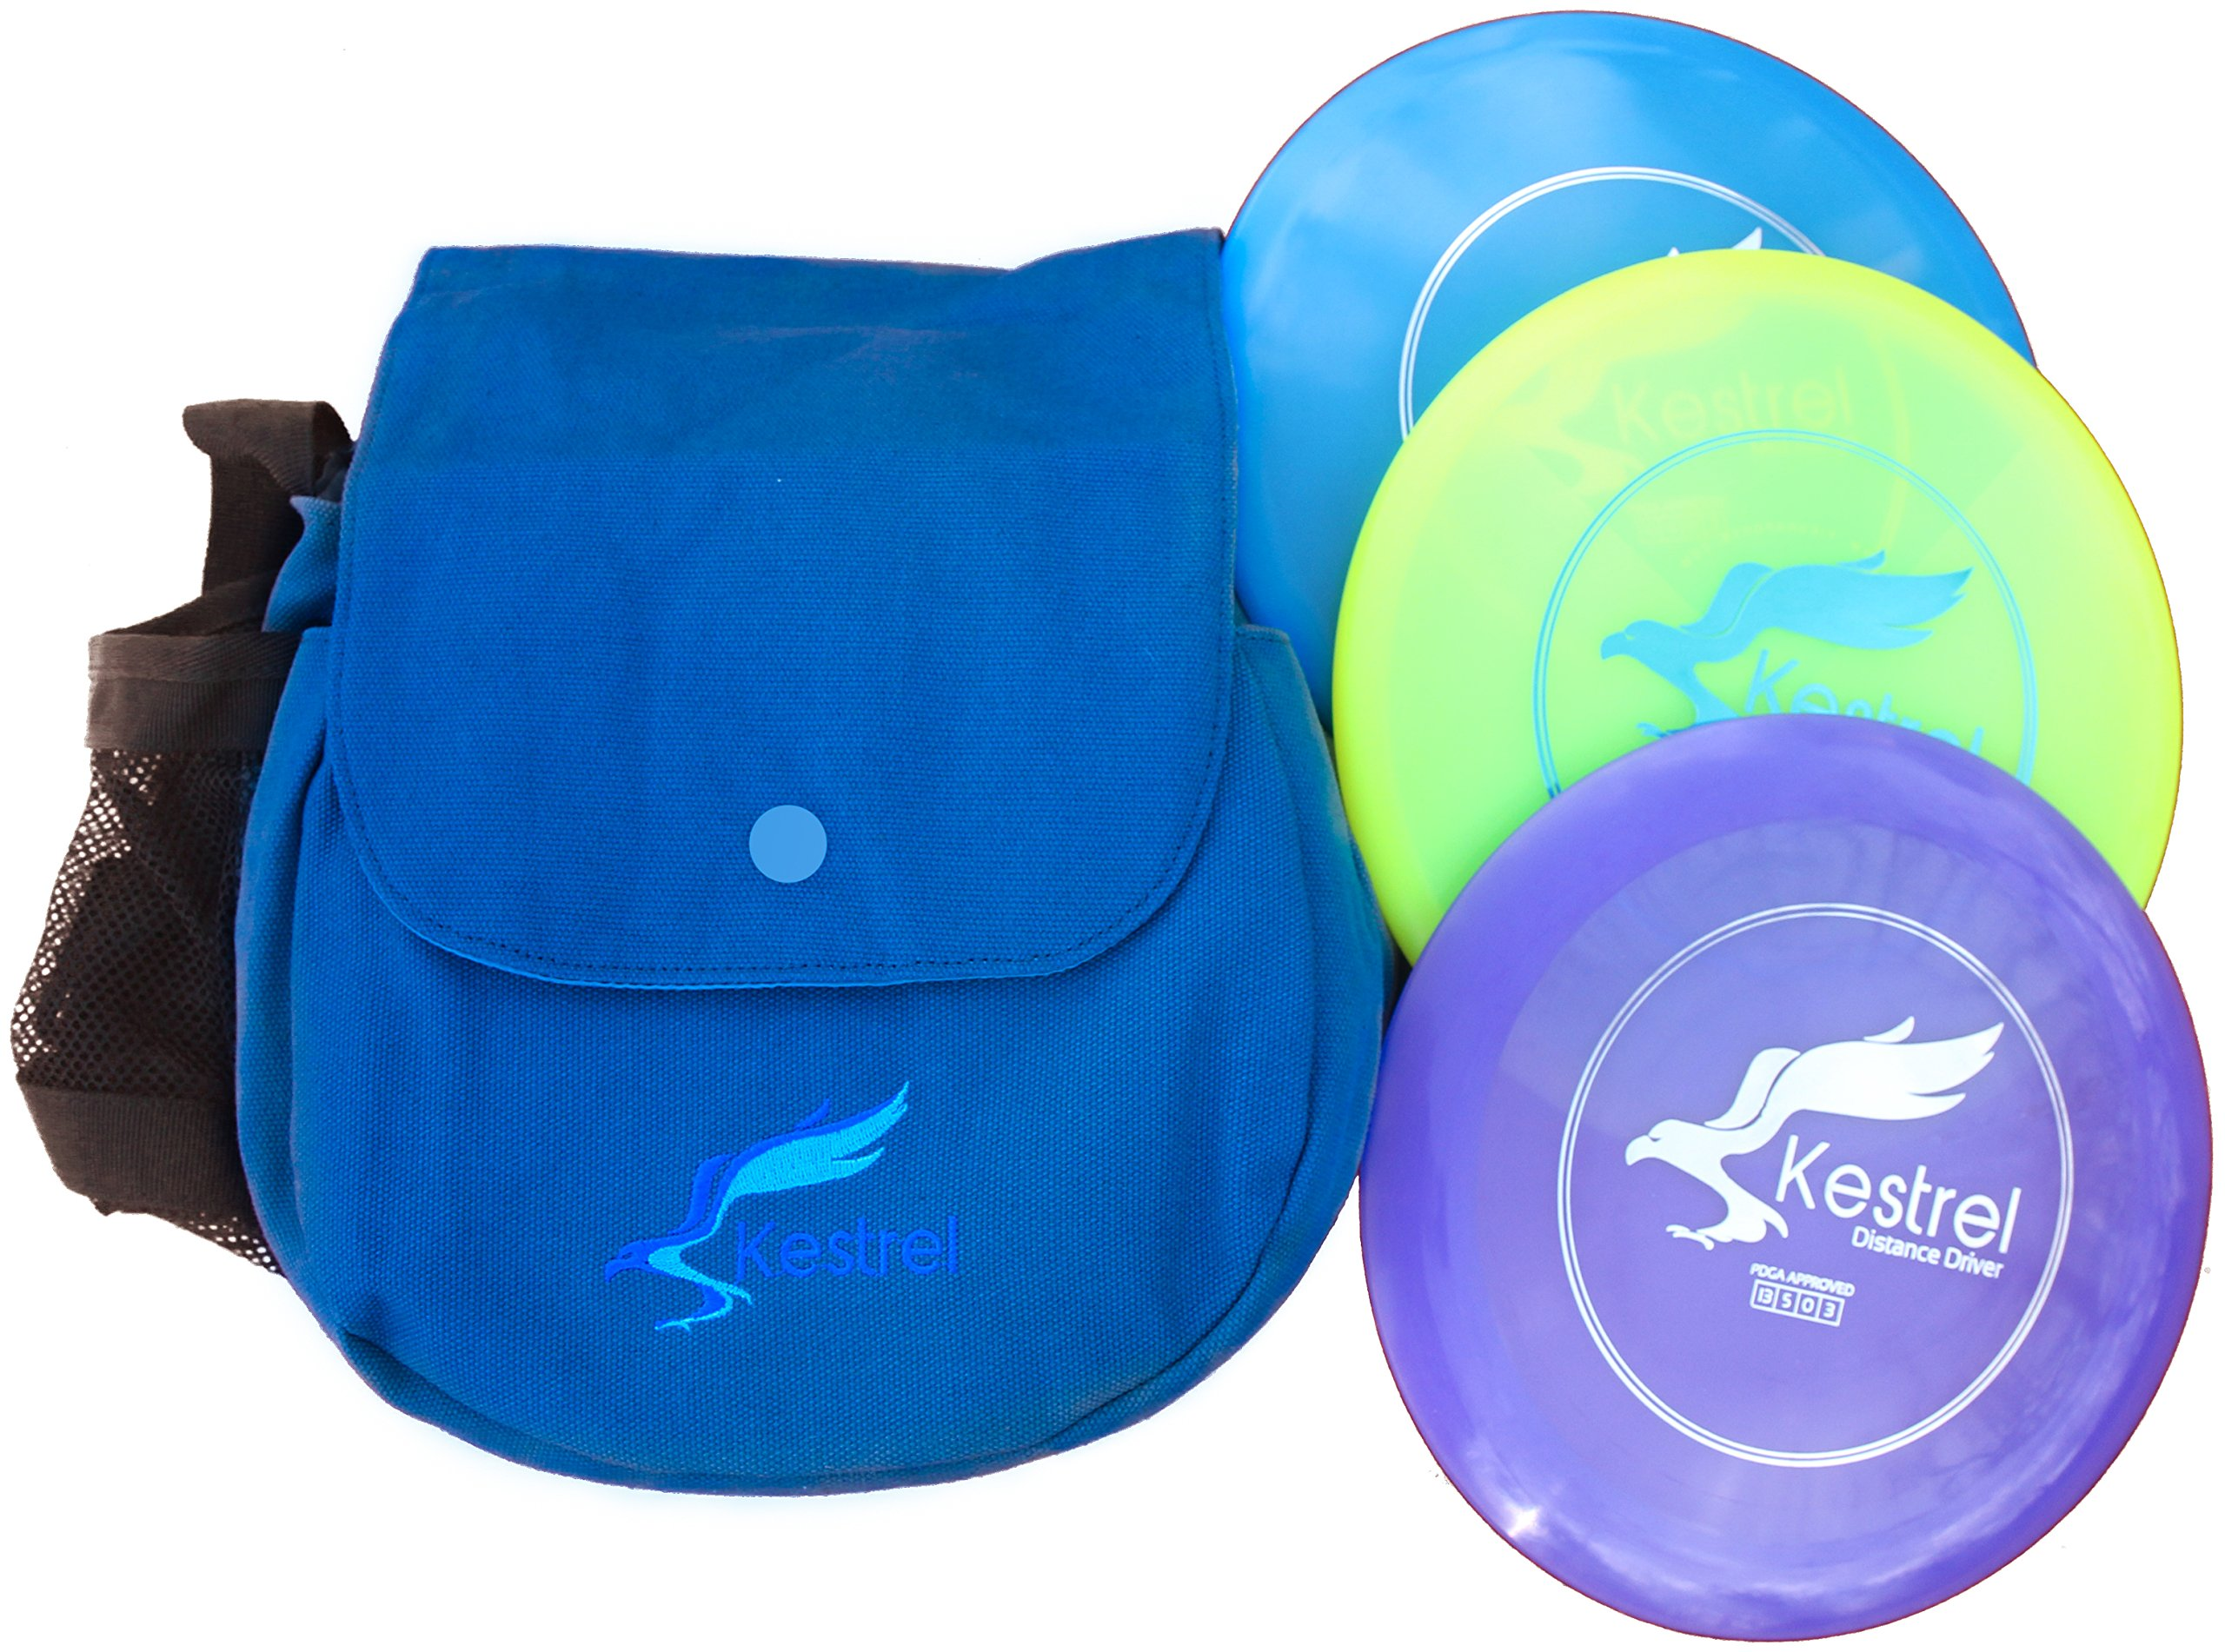 Kestrel Discs Golf Pro Set | 3 Disc Pro Pack Bundle + Bag | Disc Golf Set | Includes Distance Driver, Mid-Range and Putter | Small Disc Golf Bag (Blue) by Kestrel Discs